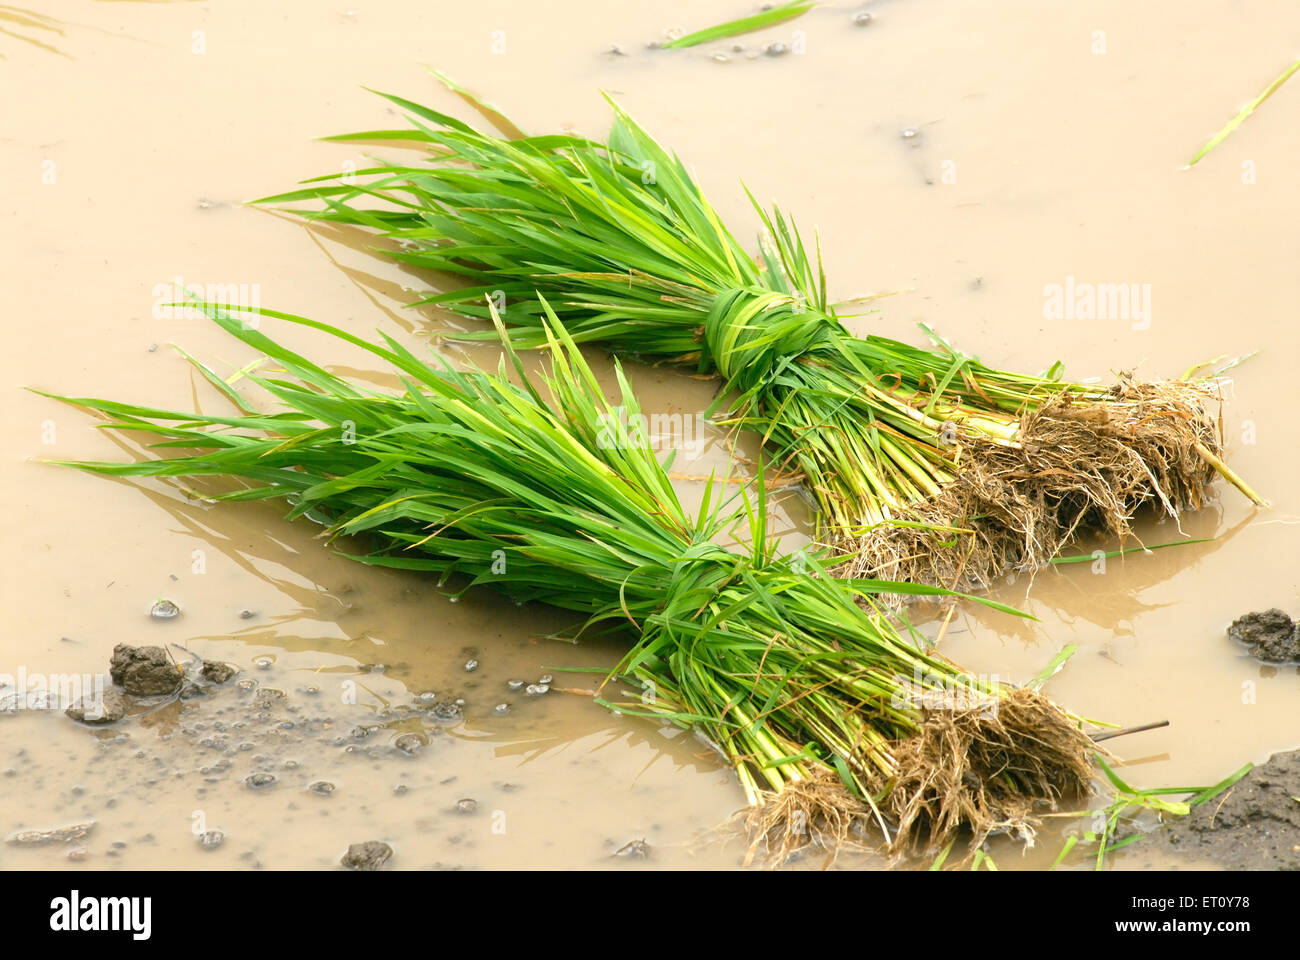 Bunch of rice crop in muddy water for sowing ; Madh ; Malshej Ghat ; Maharashtra ; India - Stock Image